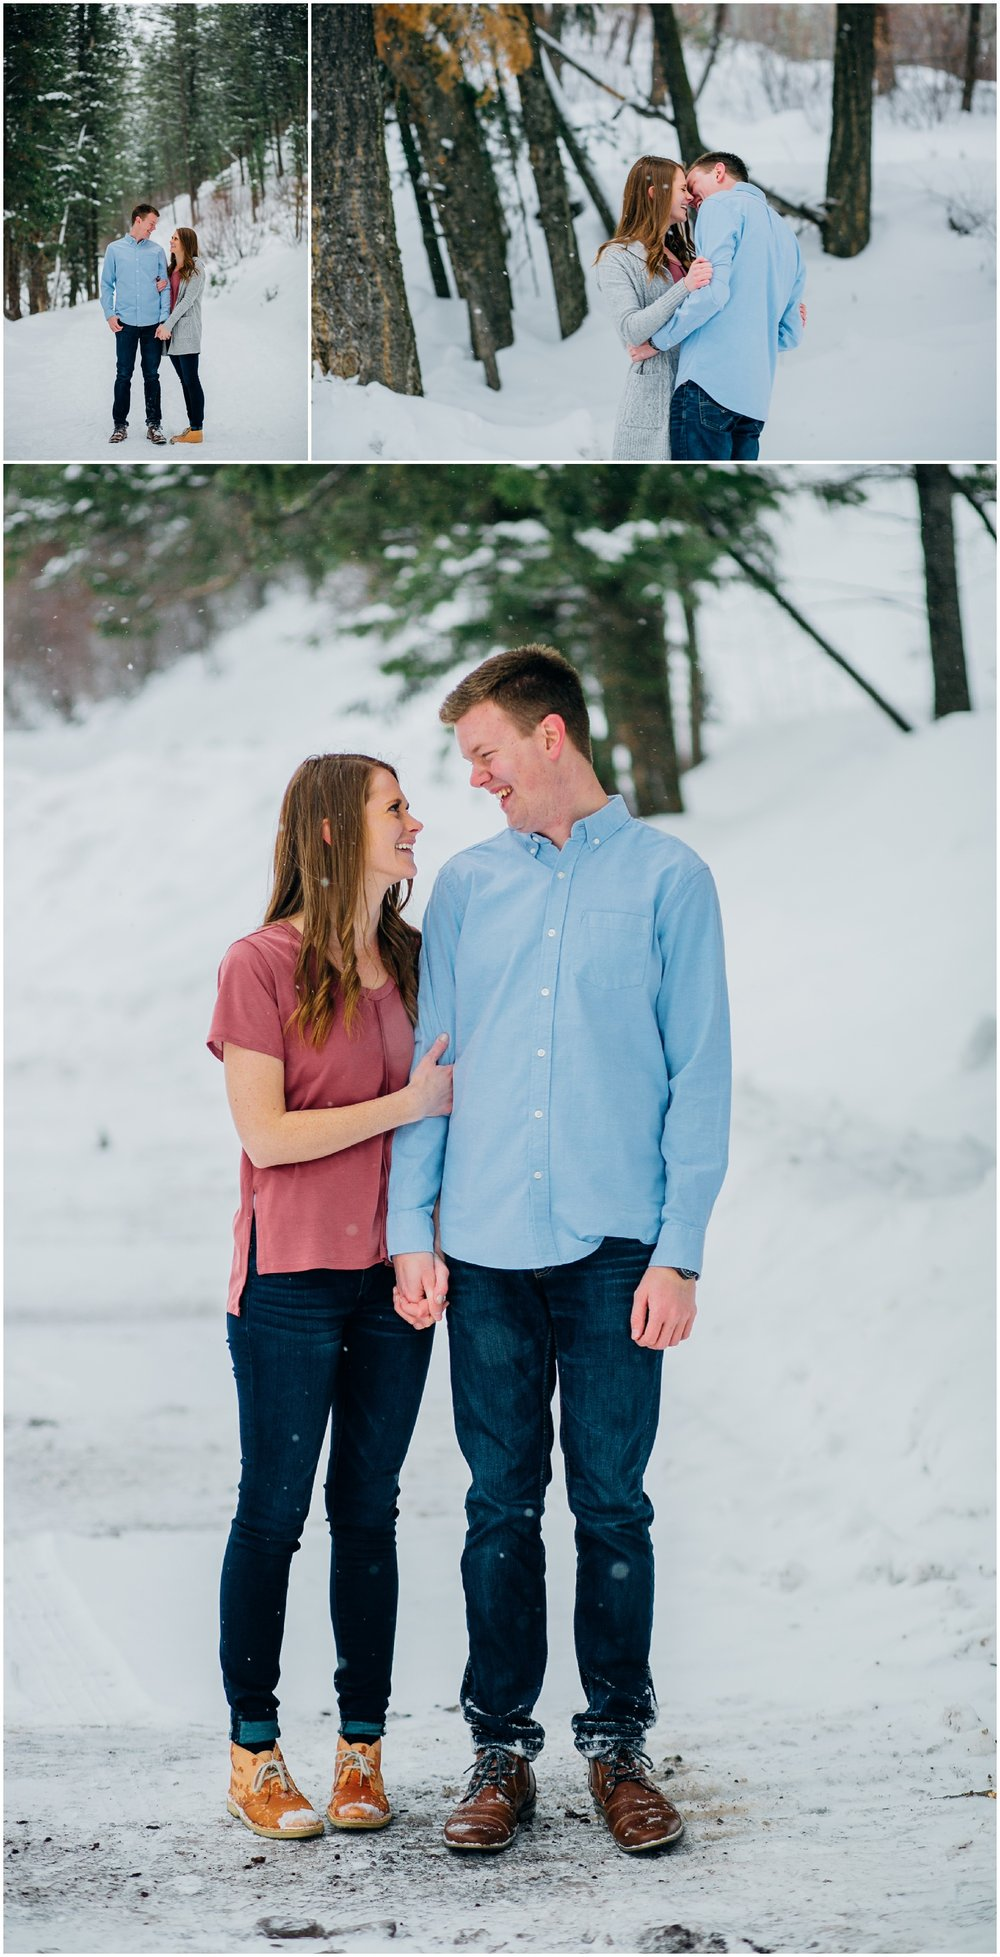 kelly-canyon-snowy-winter-engagements-idaho-wedding-elopement-photographer_0082.jpg